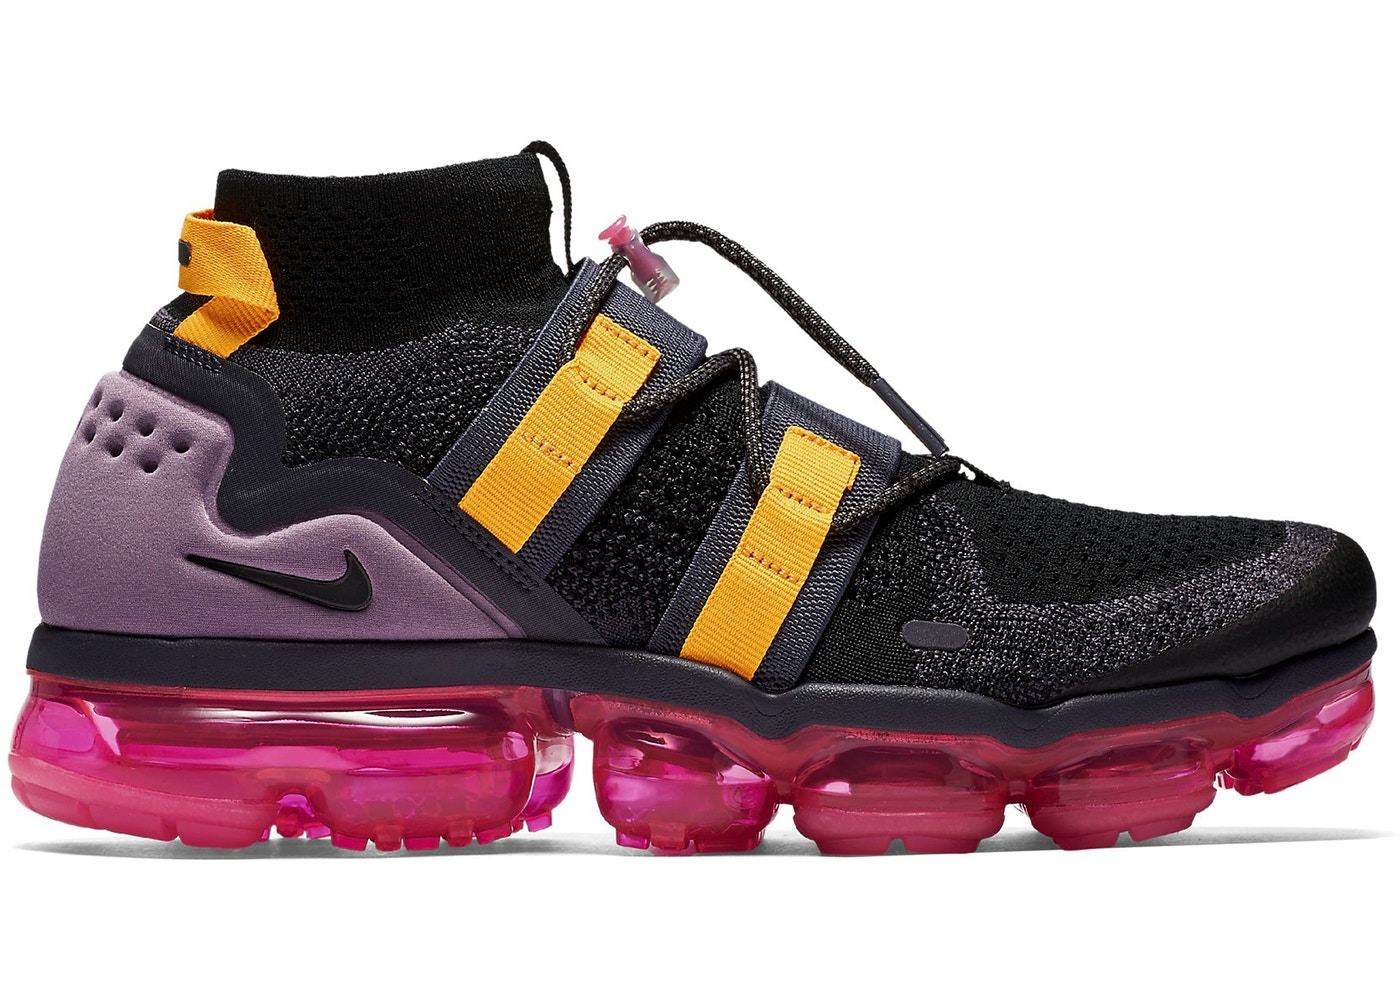 brand new 09831 05644 Air VaporMax Utility Black Pink Blast